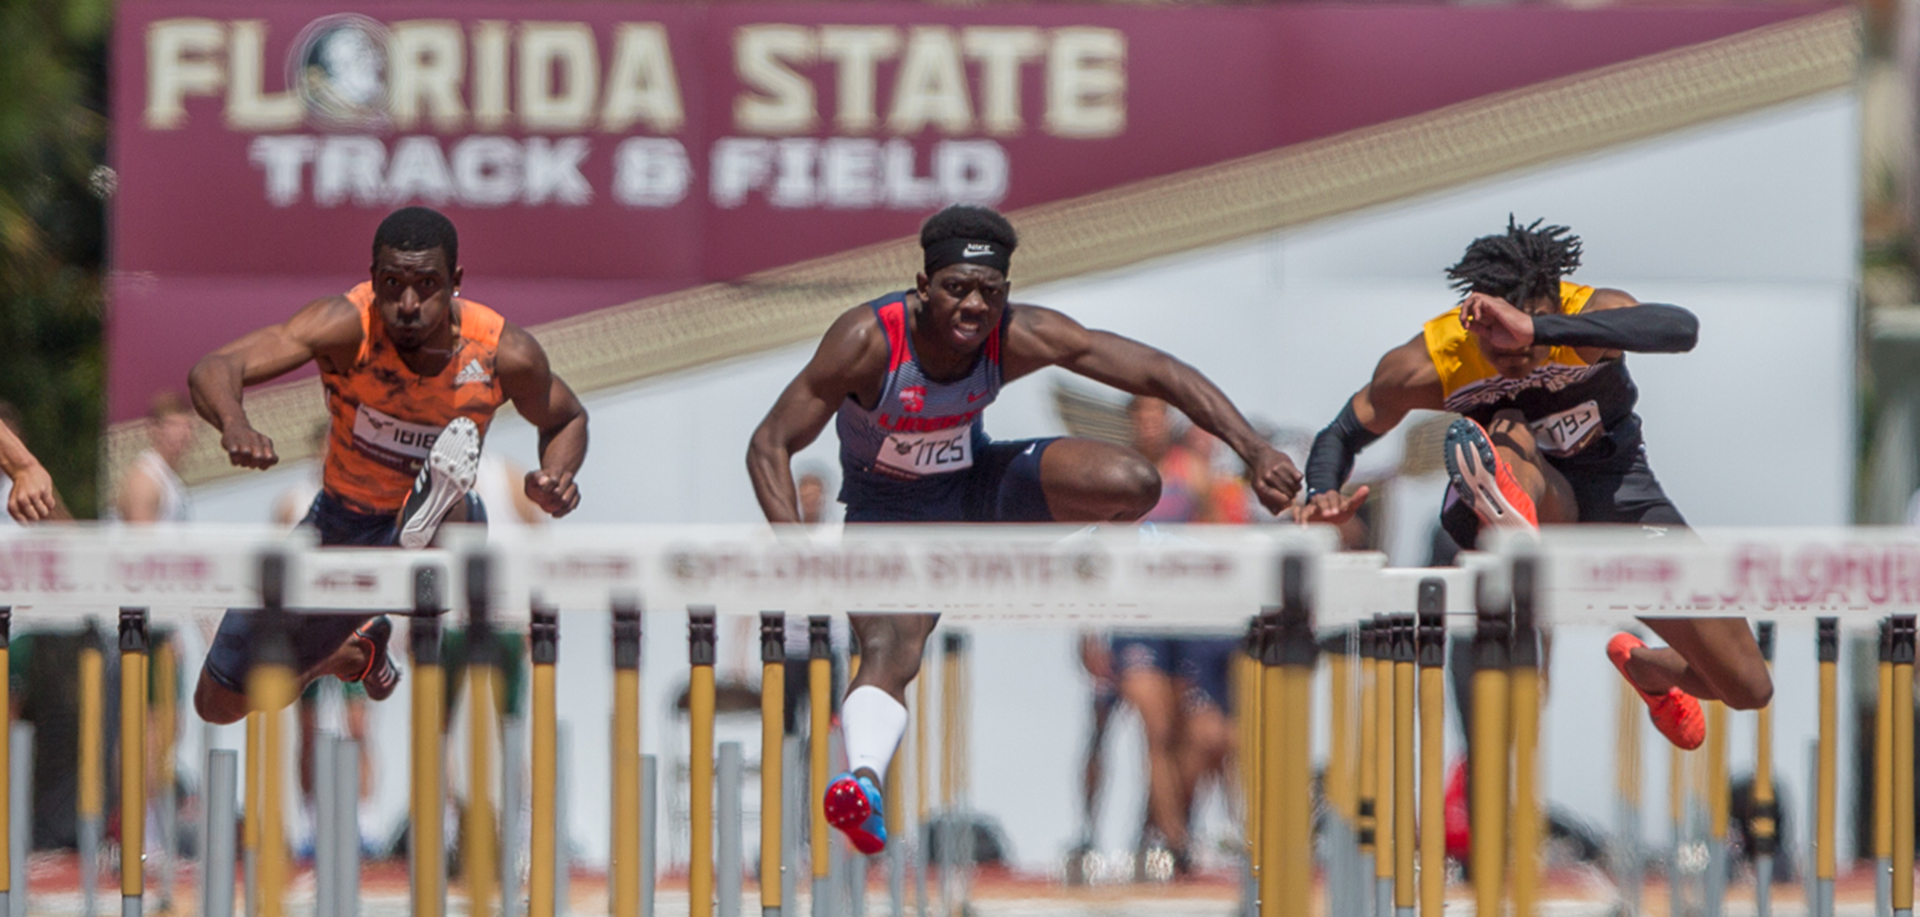 Jovaine Atkinson's school-record time of 13.93 earned a spot in the NCAA men's 110 hurdles quarterfinals. (Photo Courtesy Cheryl Treworgy/Pretty Sporty)